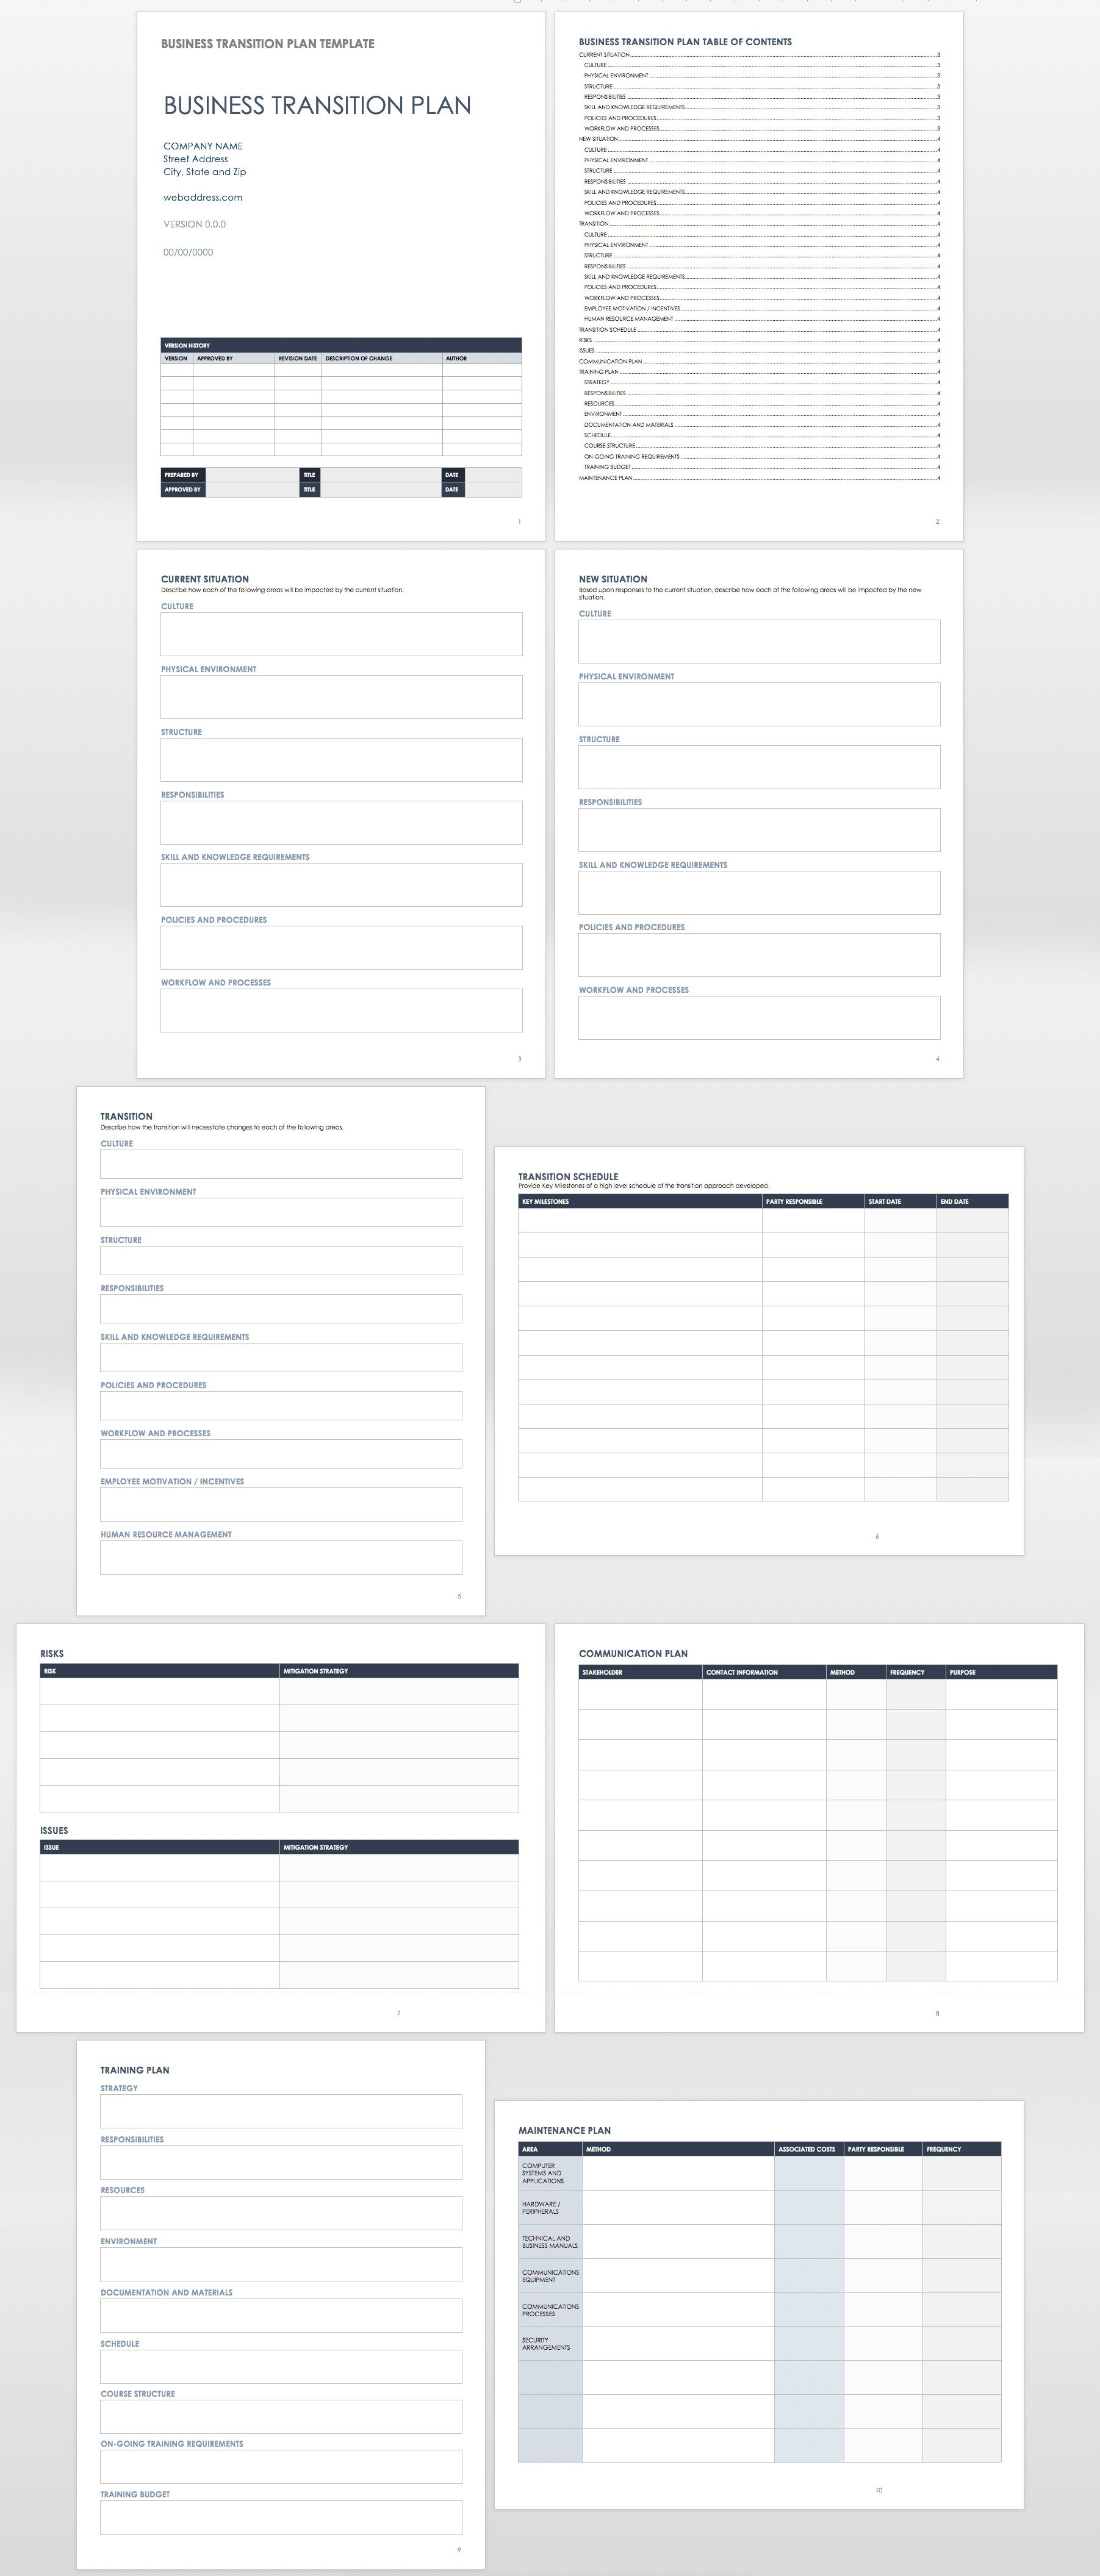 004 Imposing Project Transition Plan Template Idea  Excel Download Software SampleFull